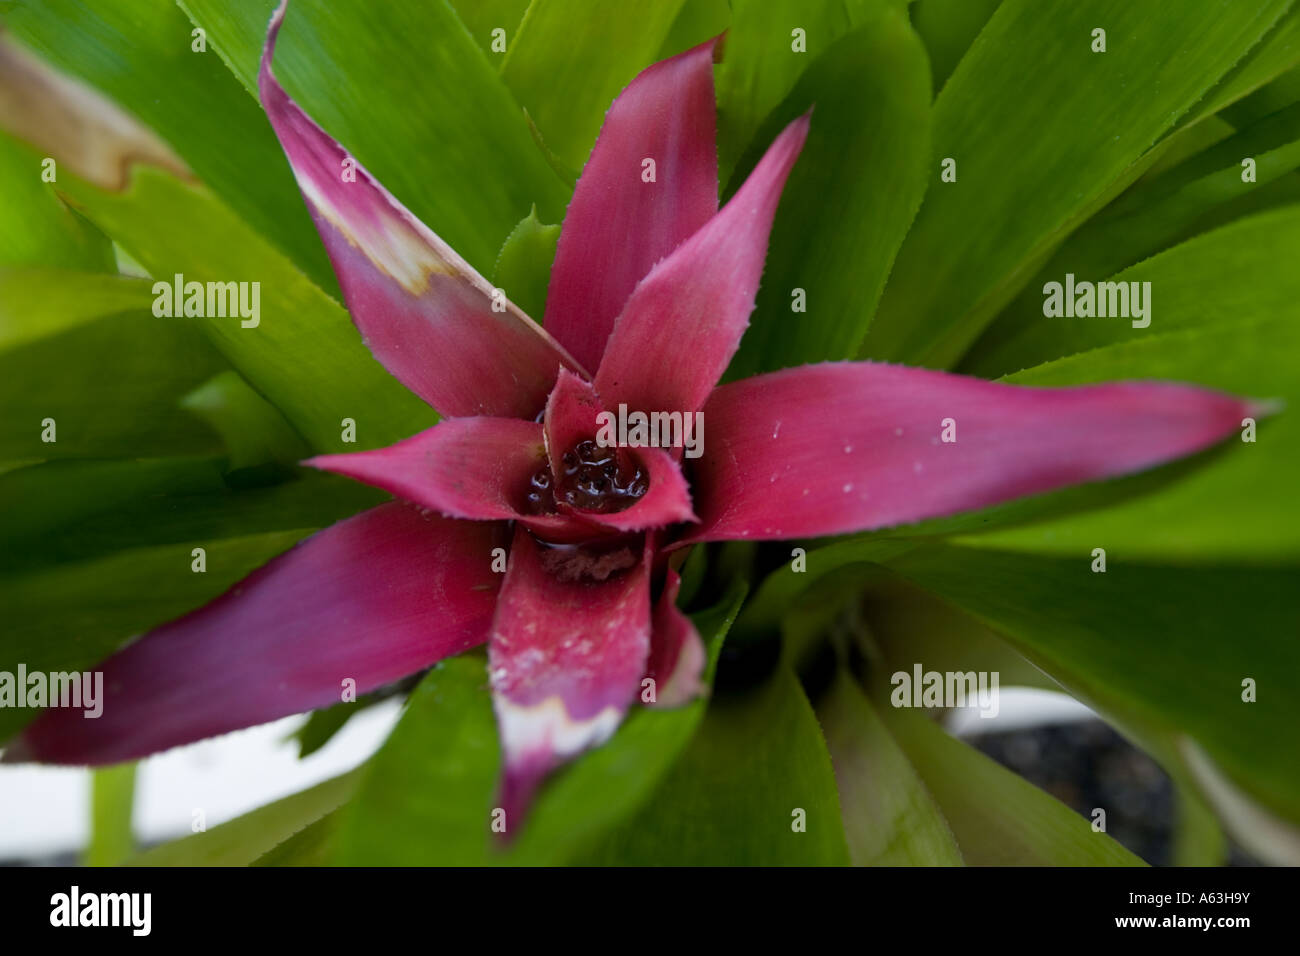 Aechmea fulgens tropical plant with green leaves and pink core flower. - Stock Image